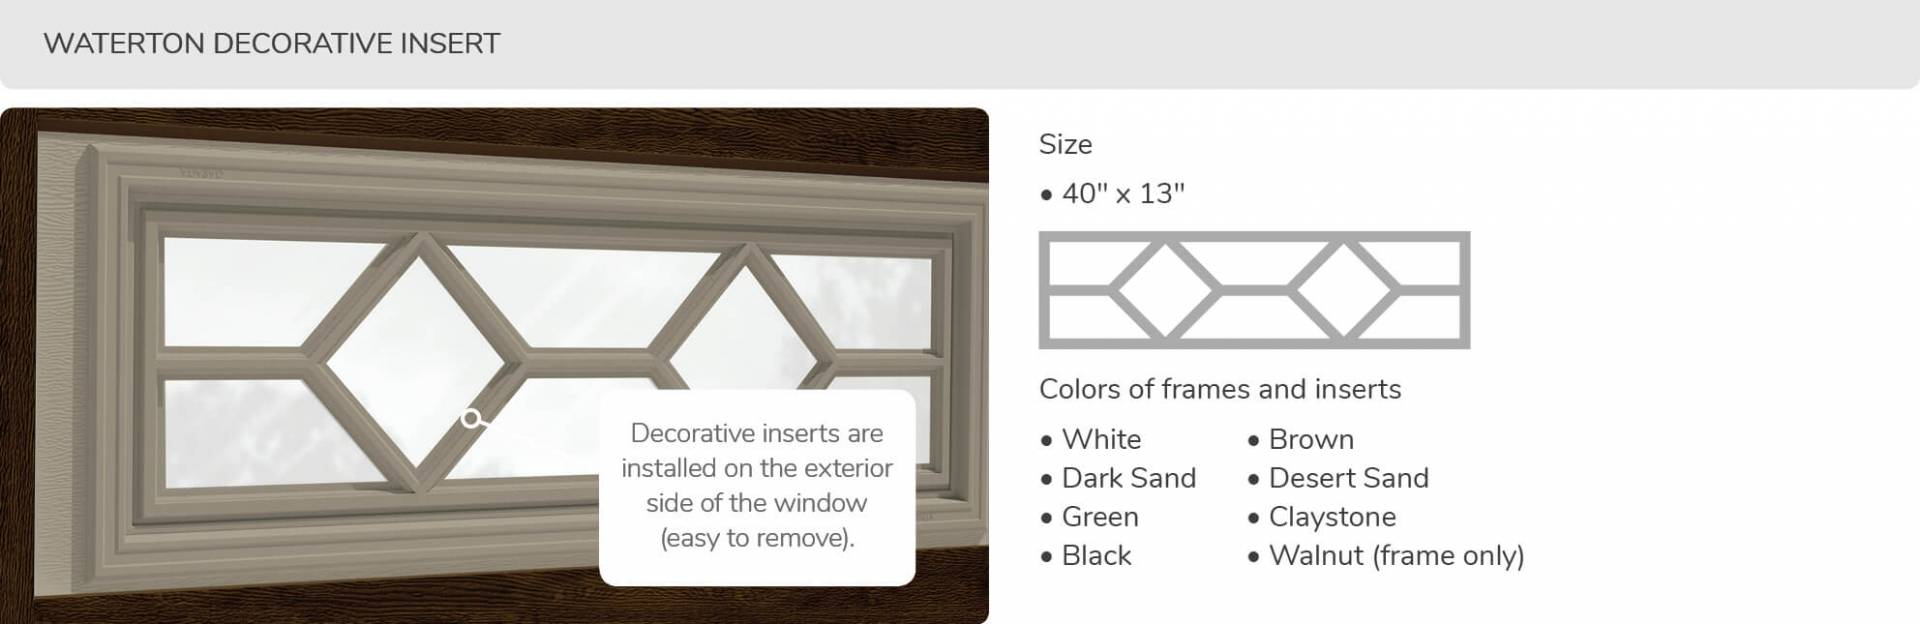 Waterton Decorative Insert, 40' x 13', available for door R-16